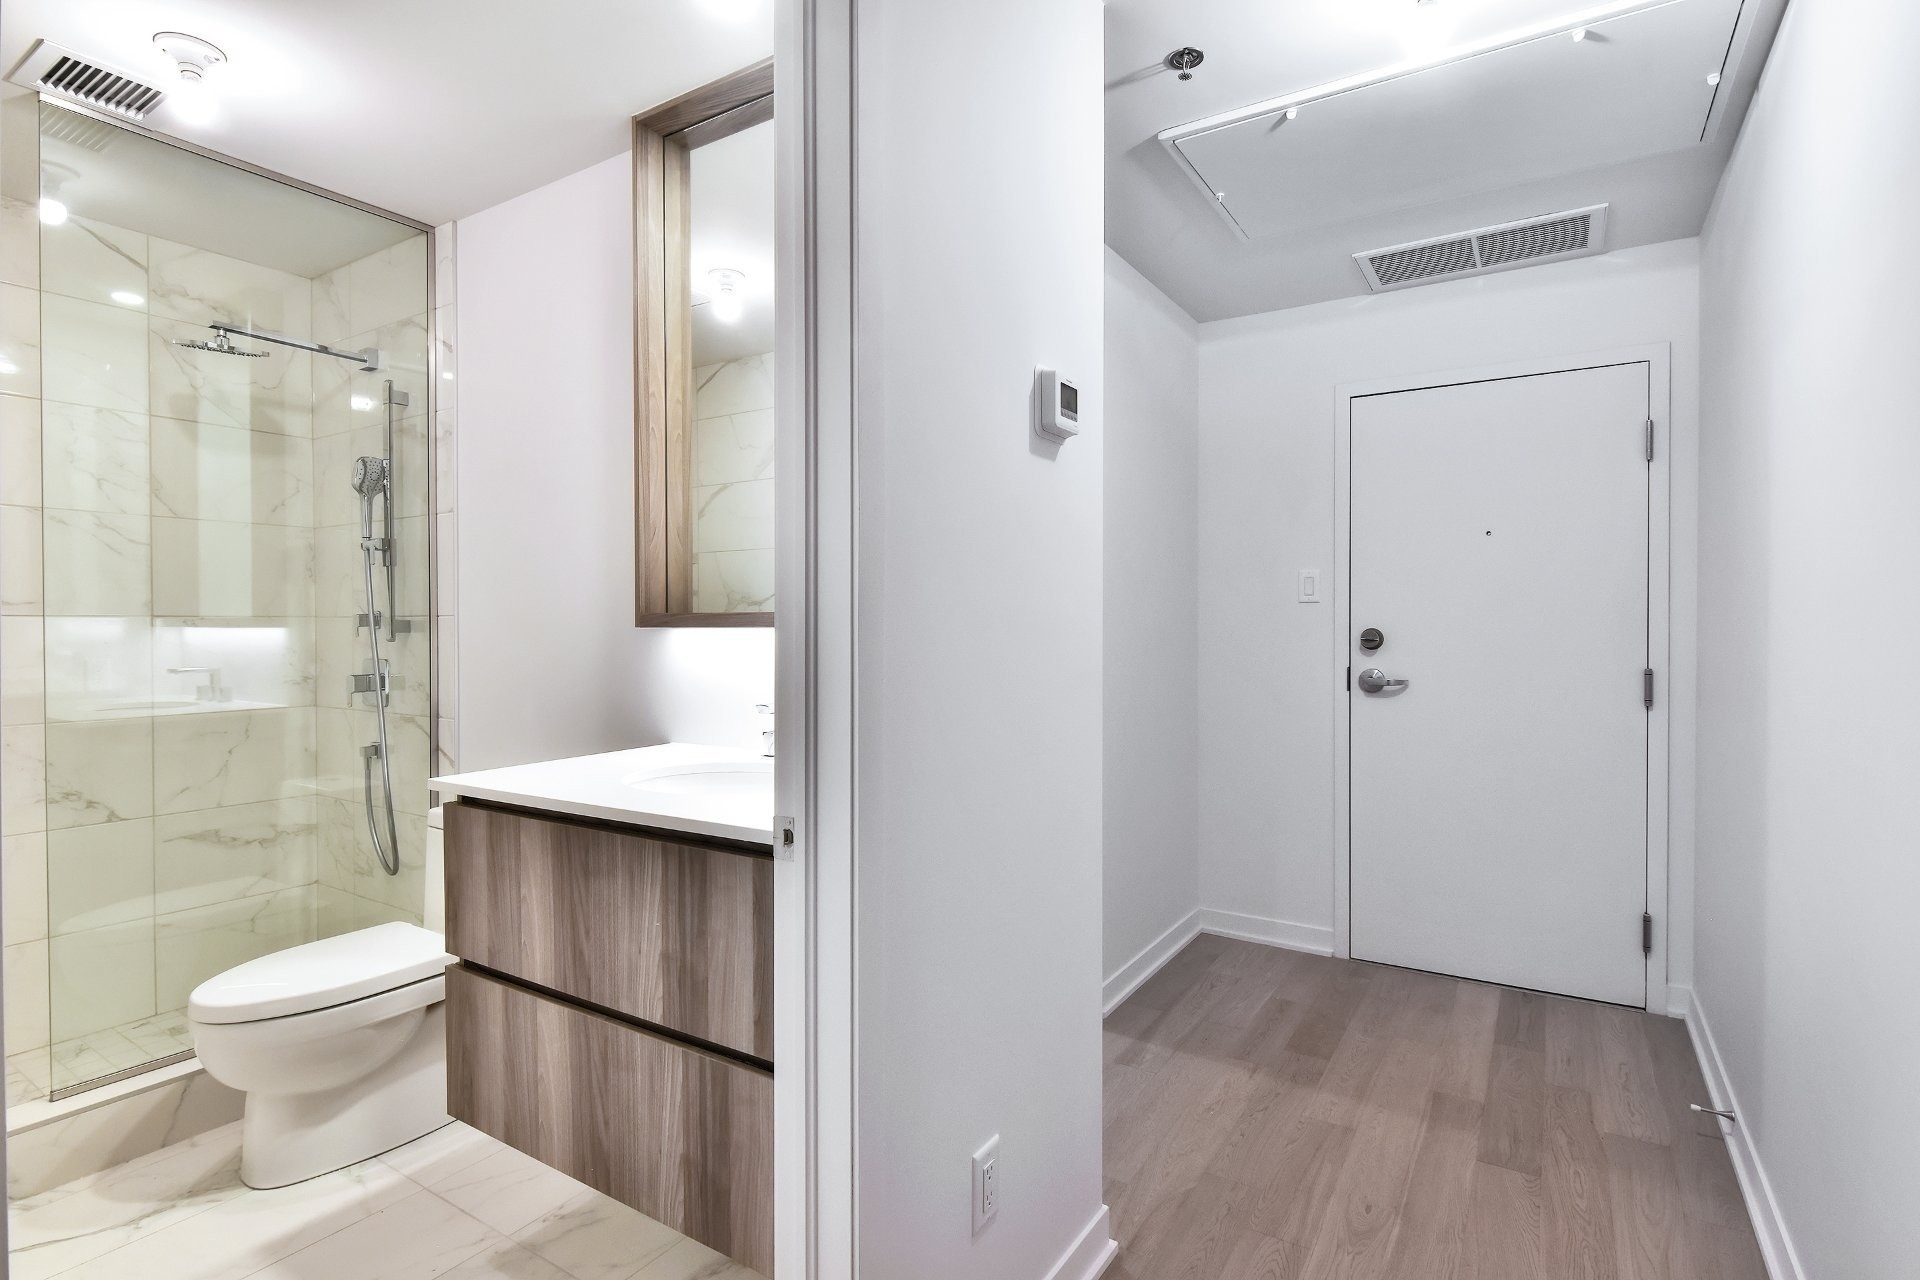 image 5 - Apartment For sale Brossard - 4 rooms